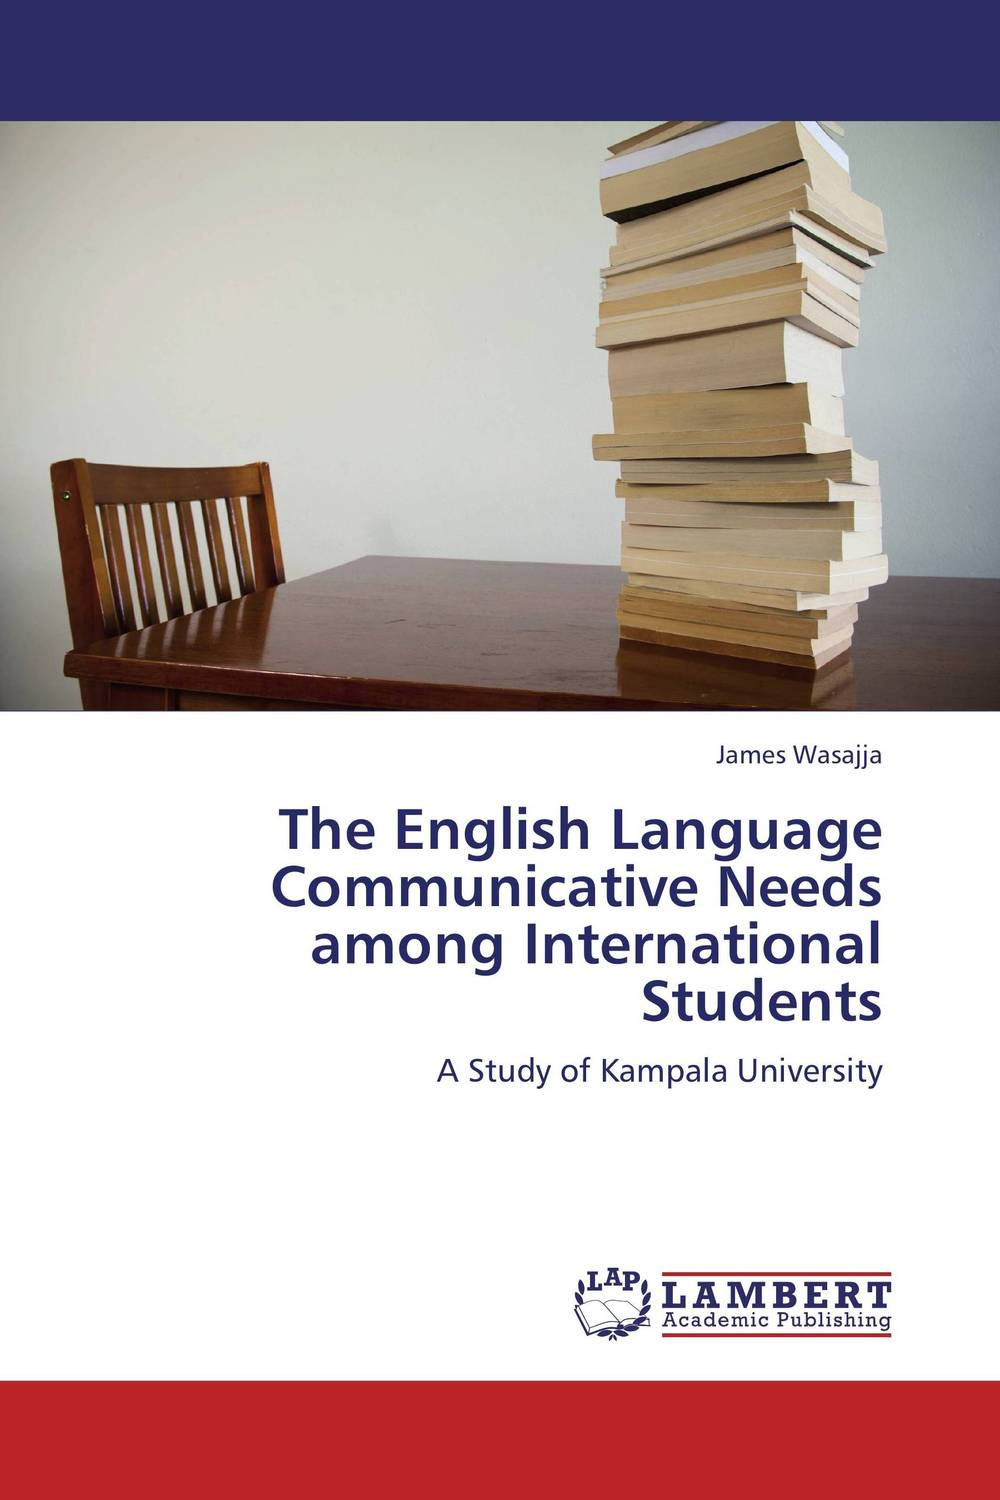 The English Language Communicative Needs among International Students elt and development of communicative abilities of university students